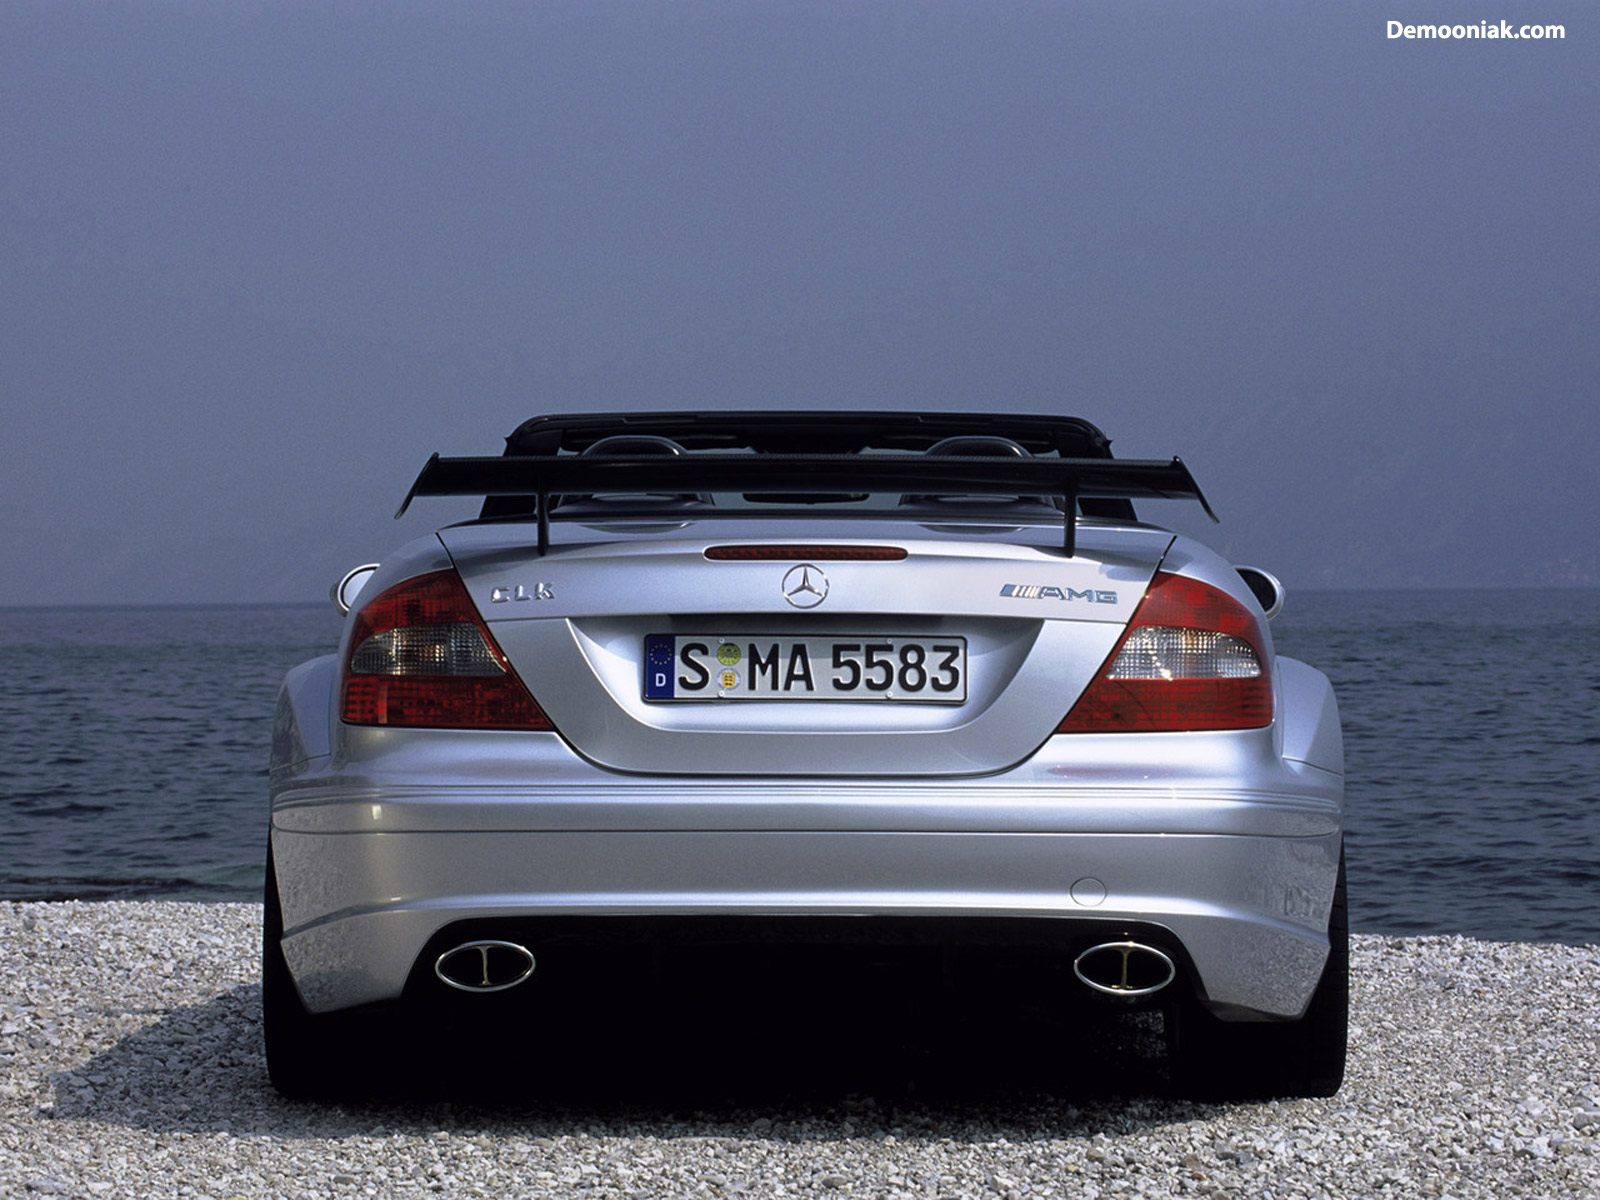 Mercedes Of Birmingham >> CLK DTM dual exhaust design? - MBWorld.org Forums